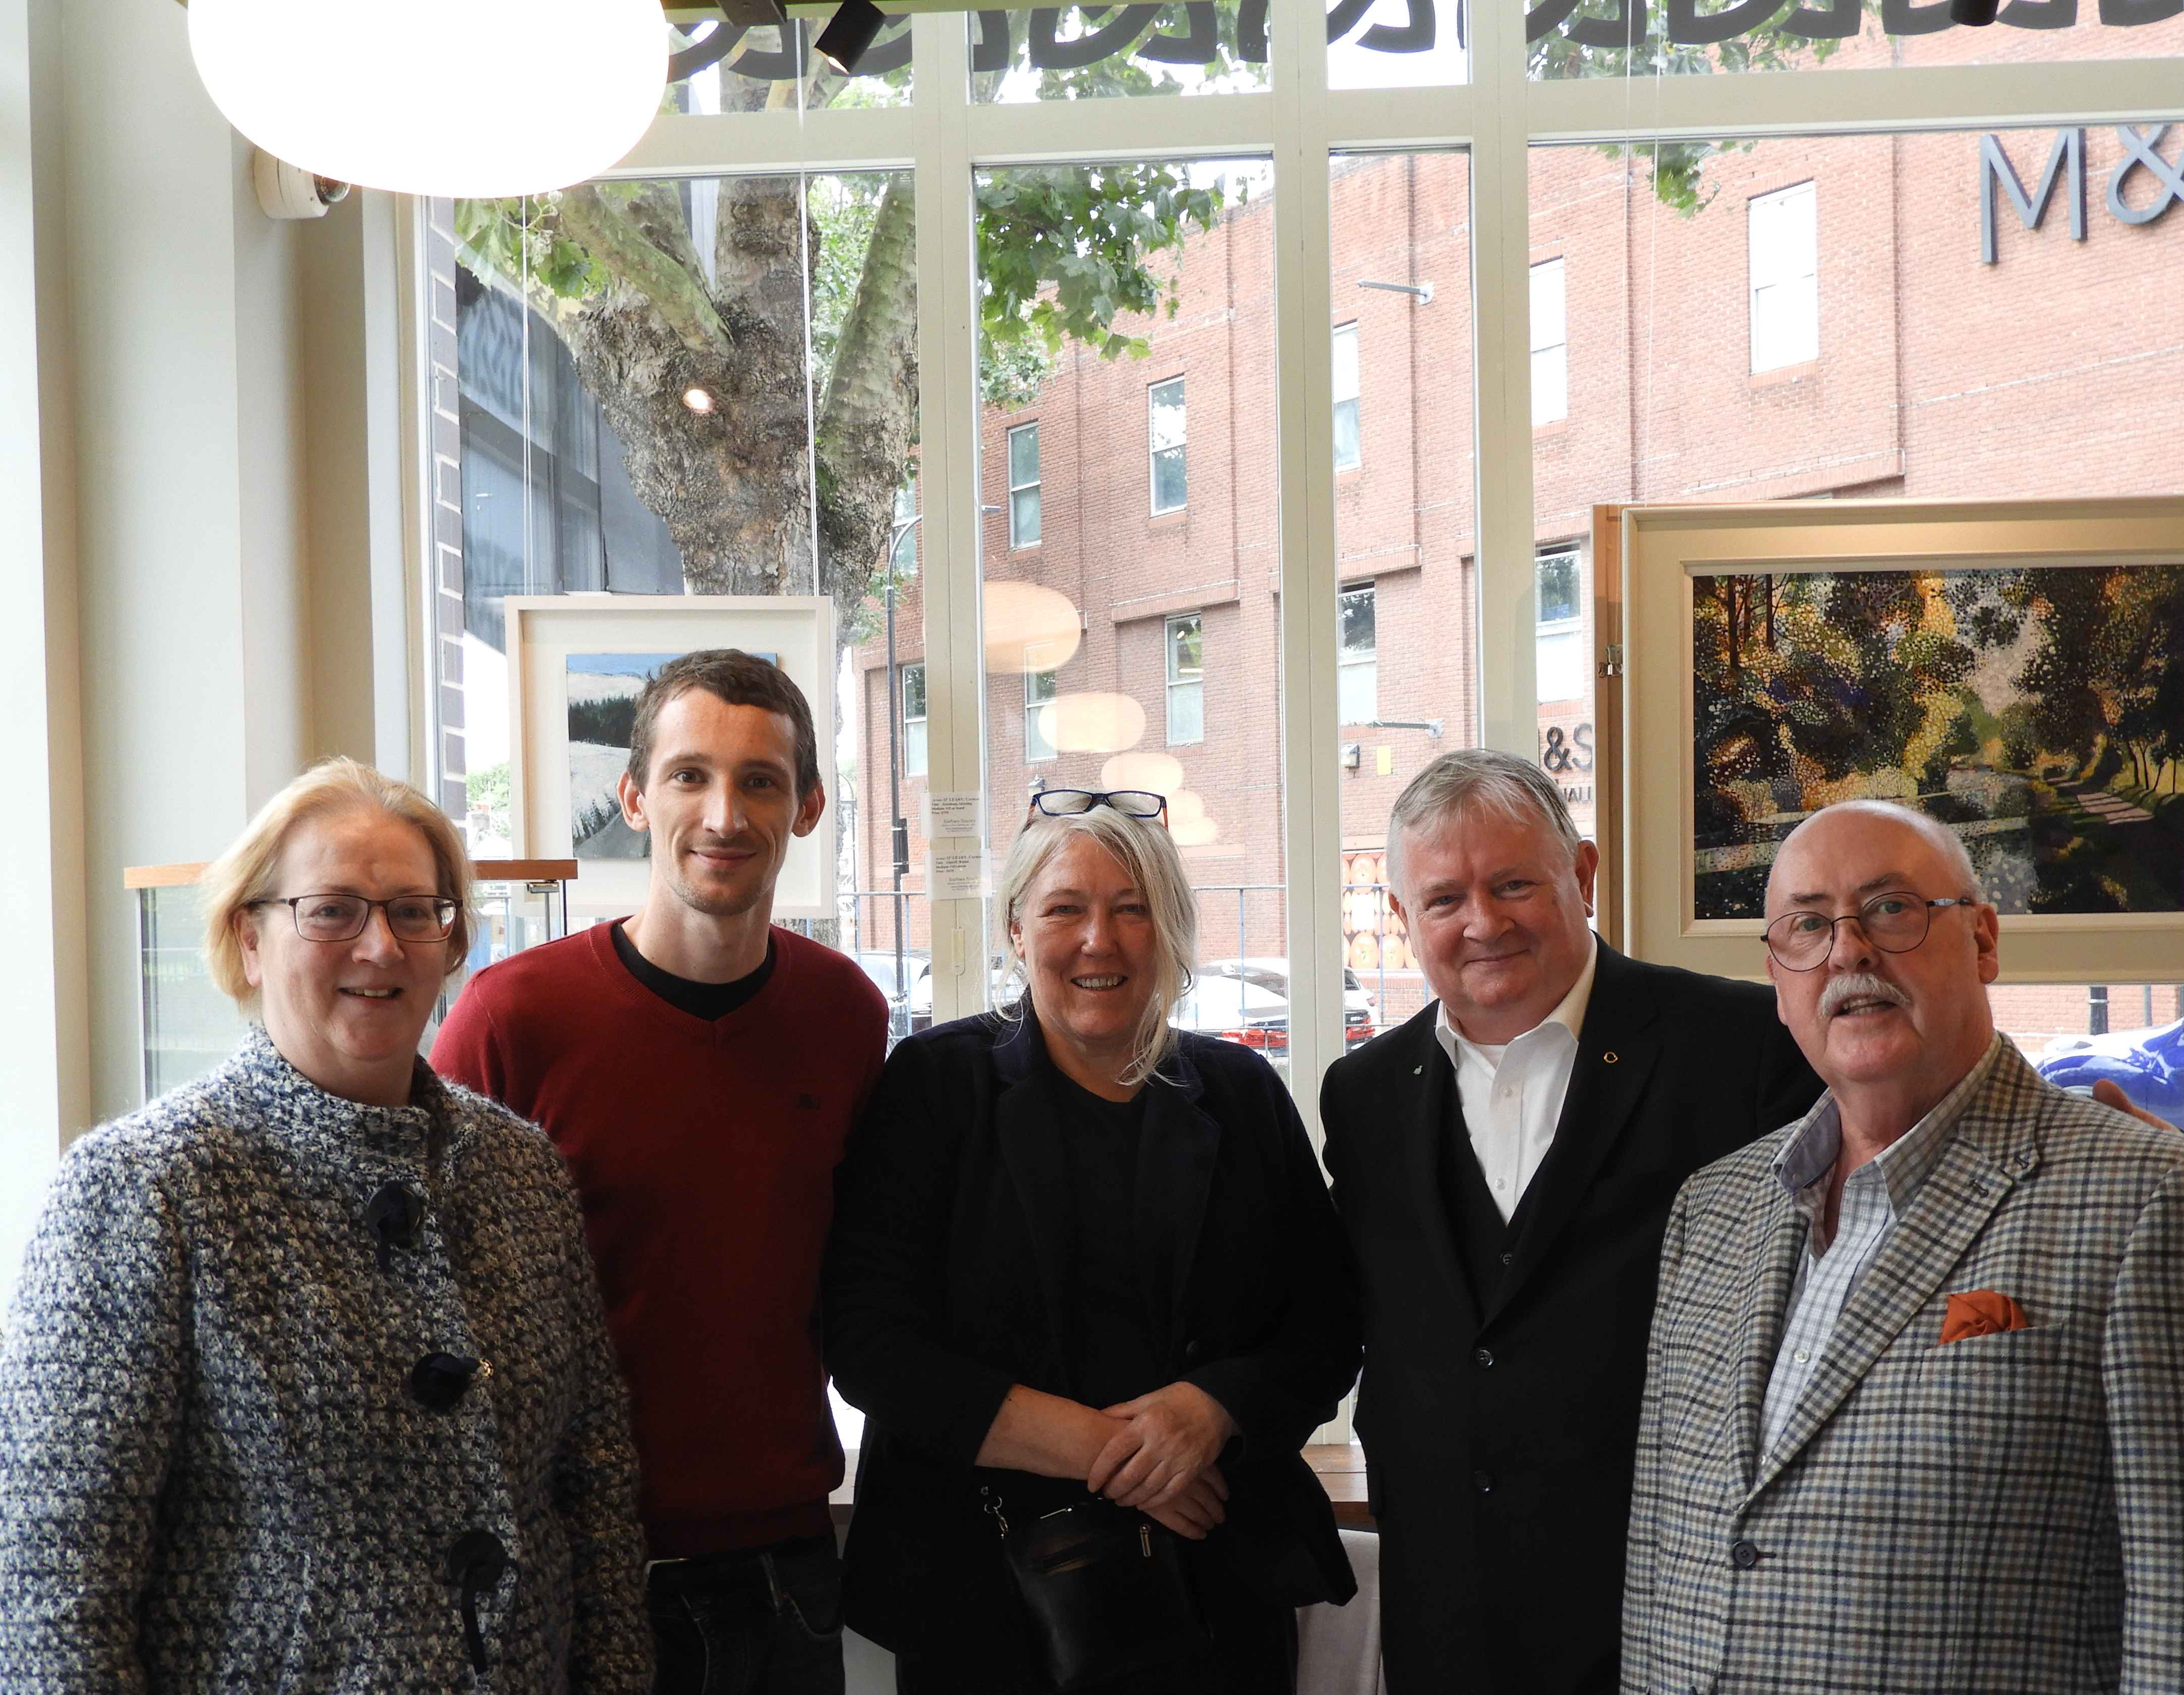 Irish Heritage Committee – Mary Connolly (trustee), Brian Hughes (artistic producer & previous IH bursary recipient), Margaret Parkinson (committee), Peter Power-Hynes (trustee I H and also chair of ICC) & Jim Kirby (chair-management committee - Irish Heritage).